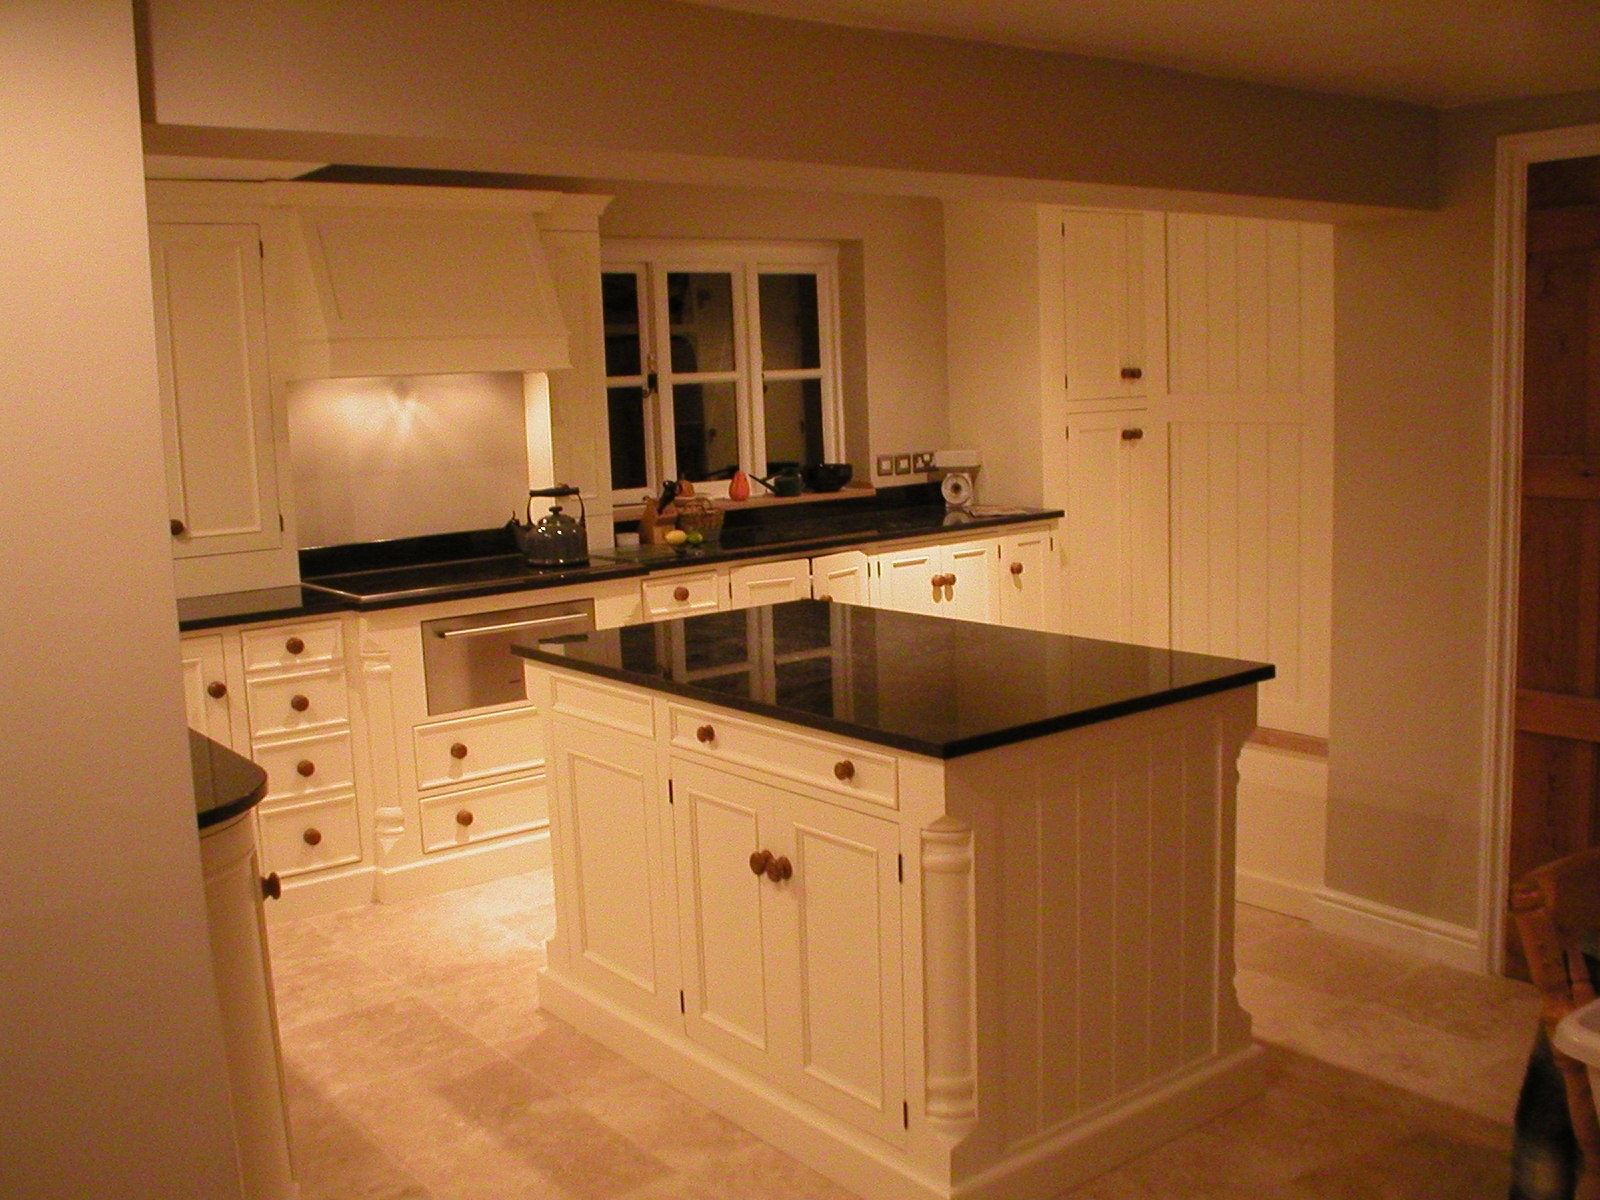 Bespoke kitchen units cabinets furniture handmade in kent for Kitchen units